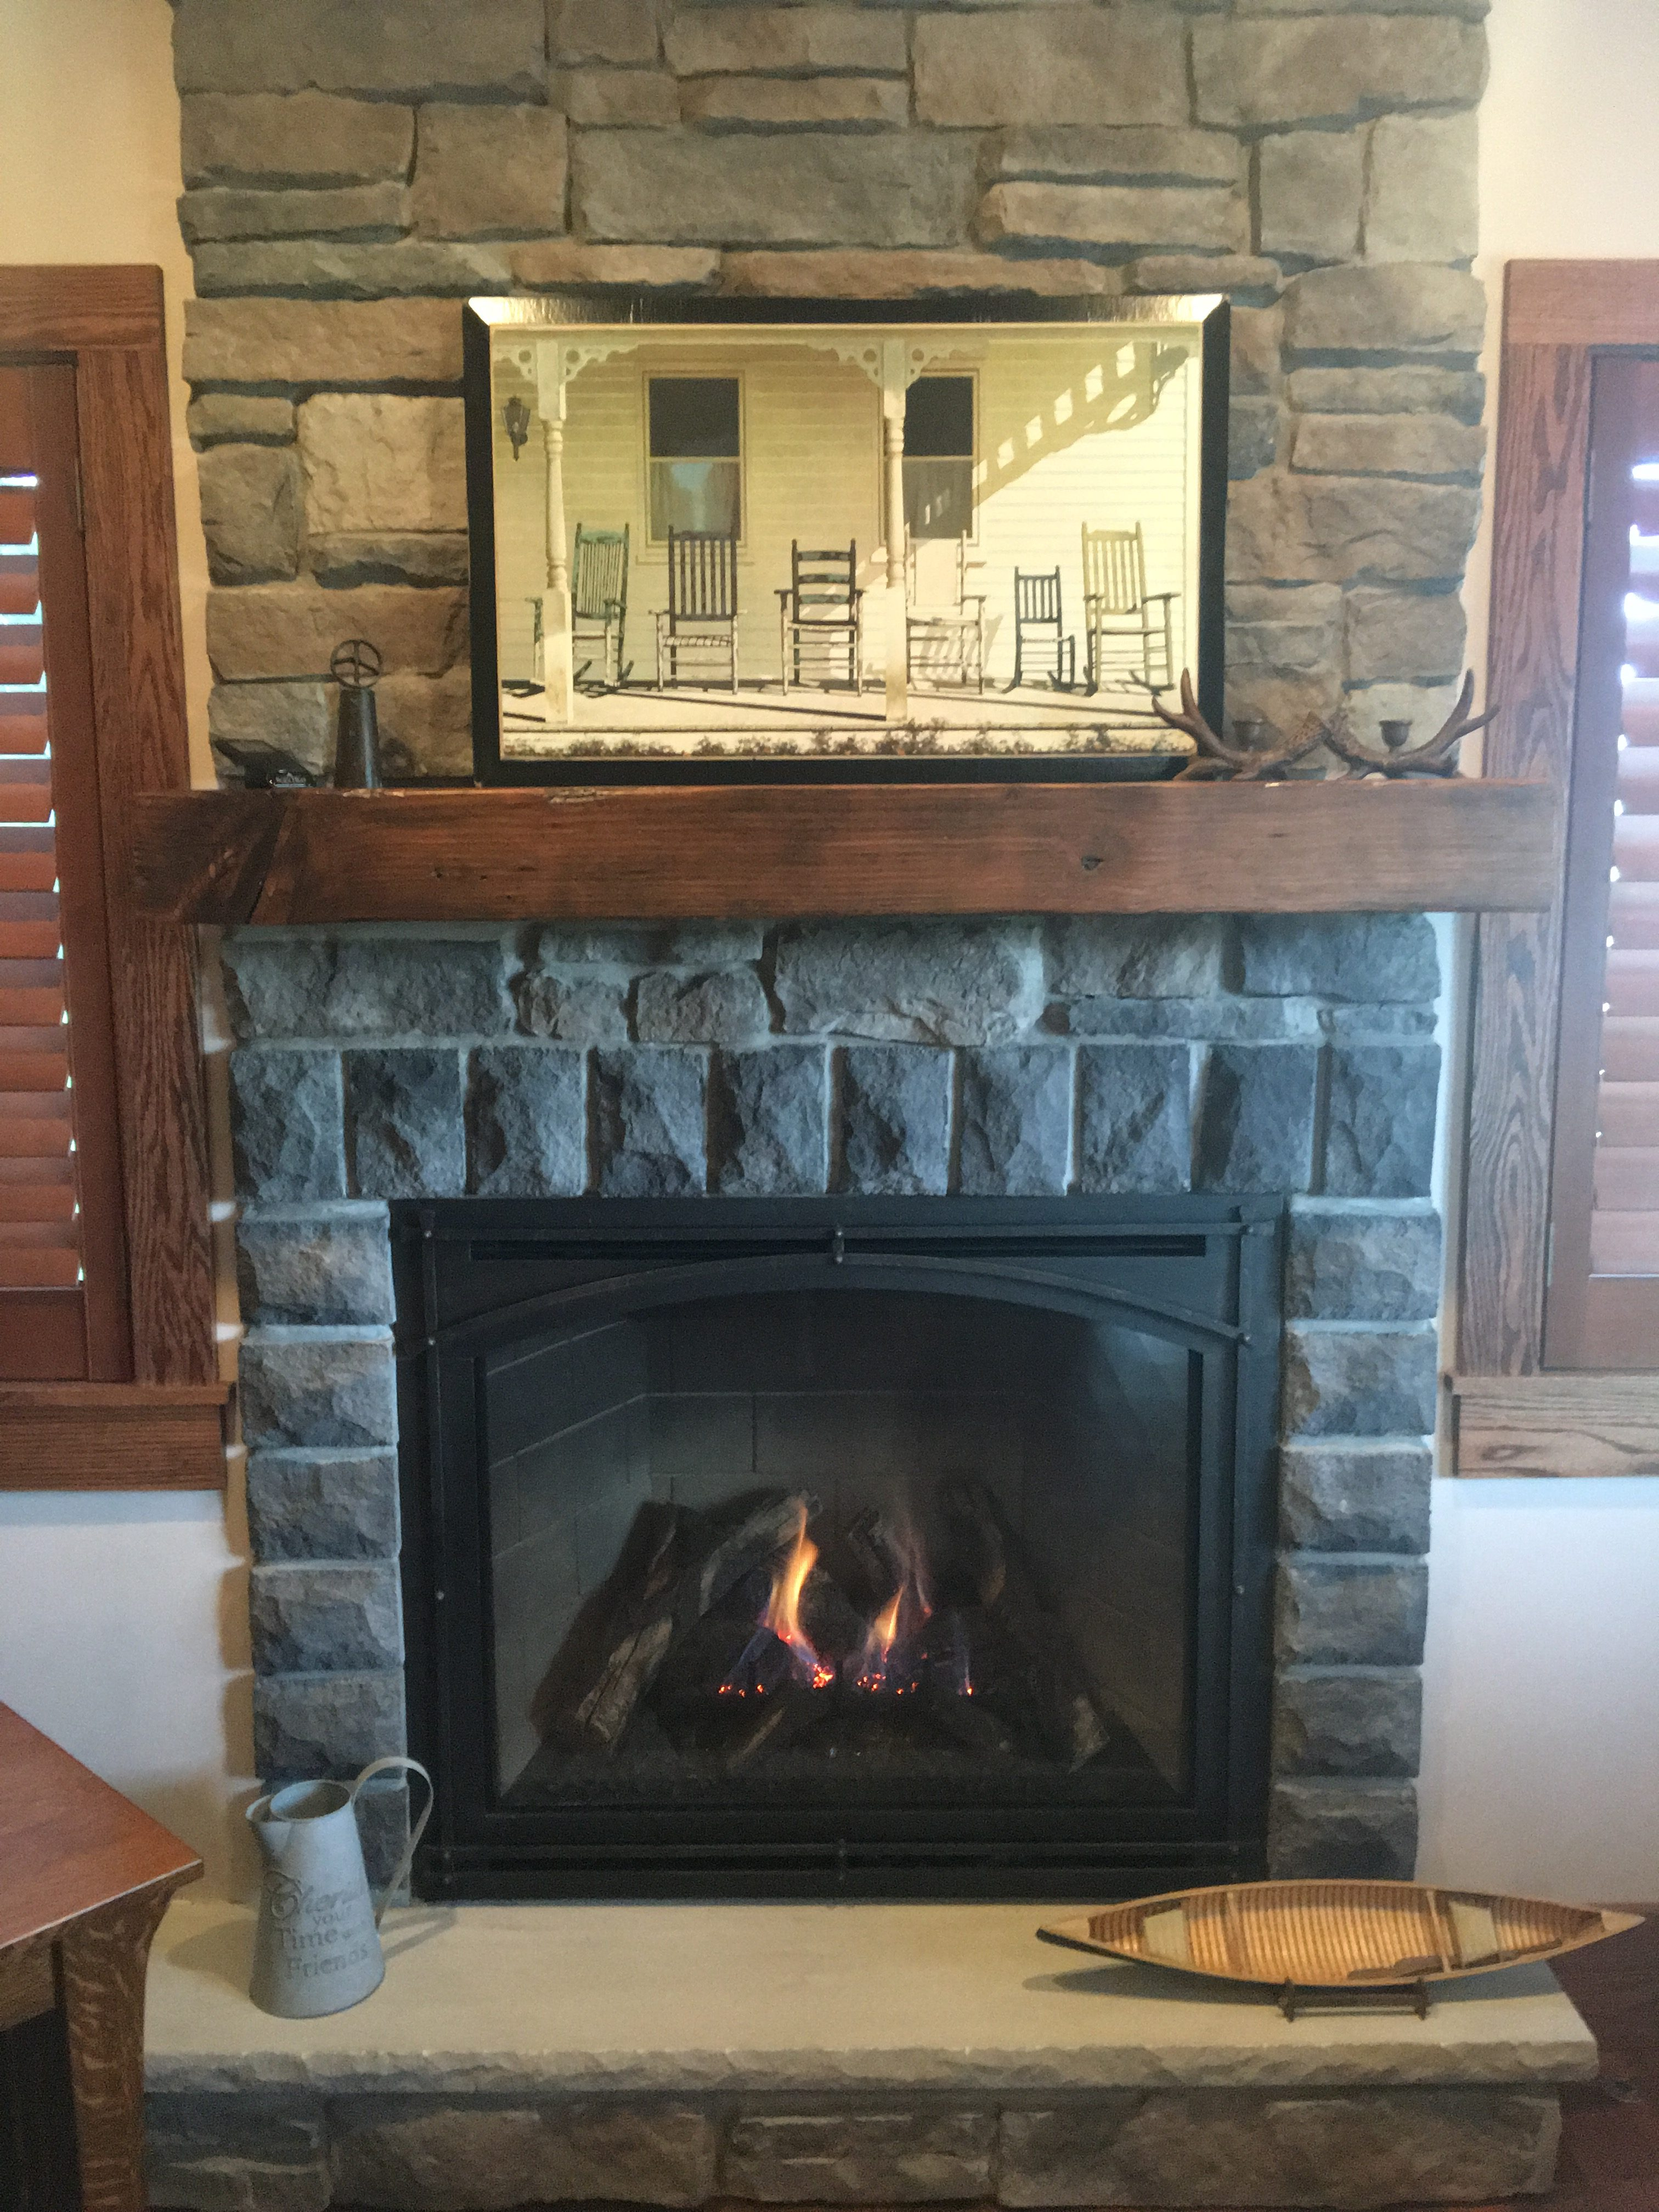 Image of a Bayport 41-Log Gas fireplace by Kozy Heat featuring Masonry interior and Stone Facing.